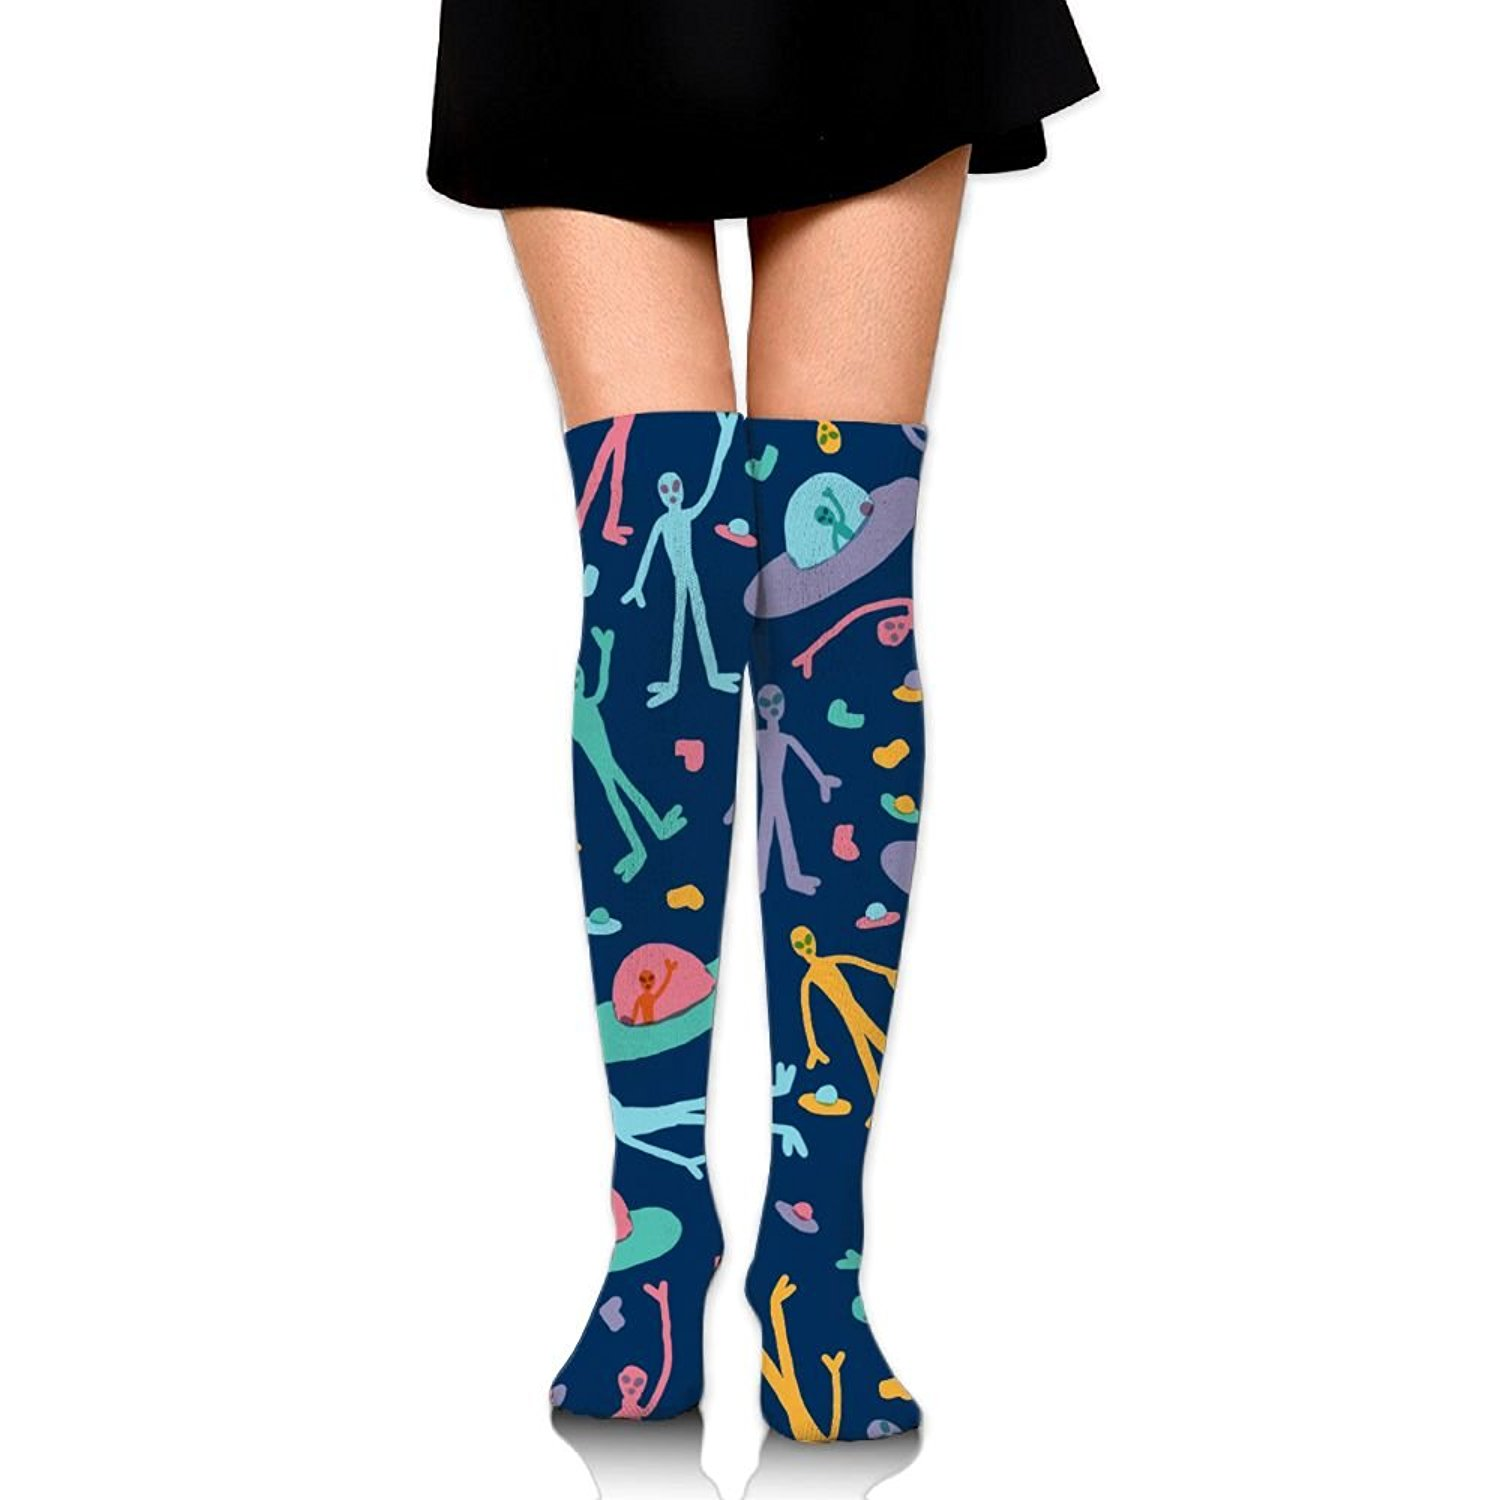 Zaqxsw Alien Women Cool Thigh High Socks Thermal Socks For Womens